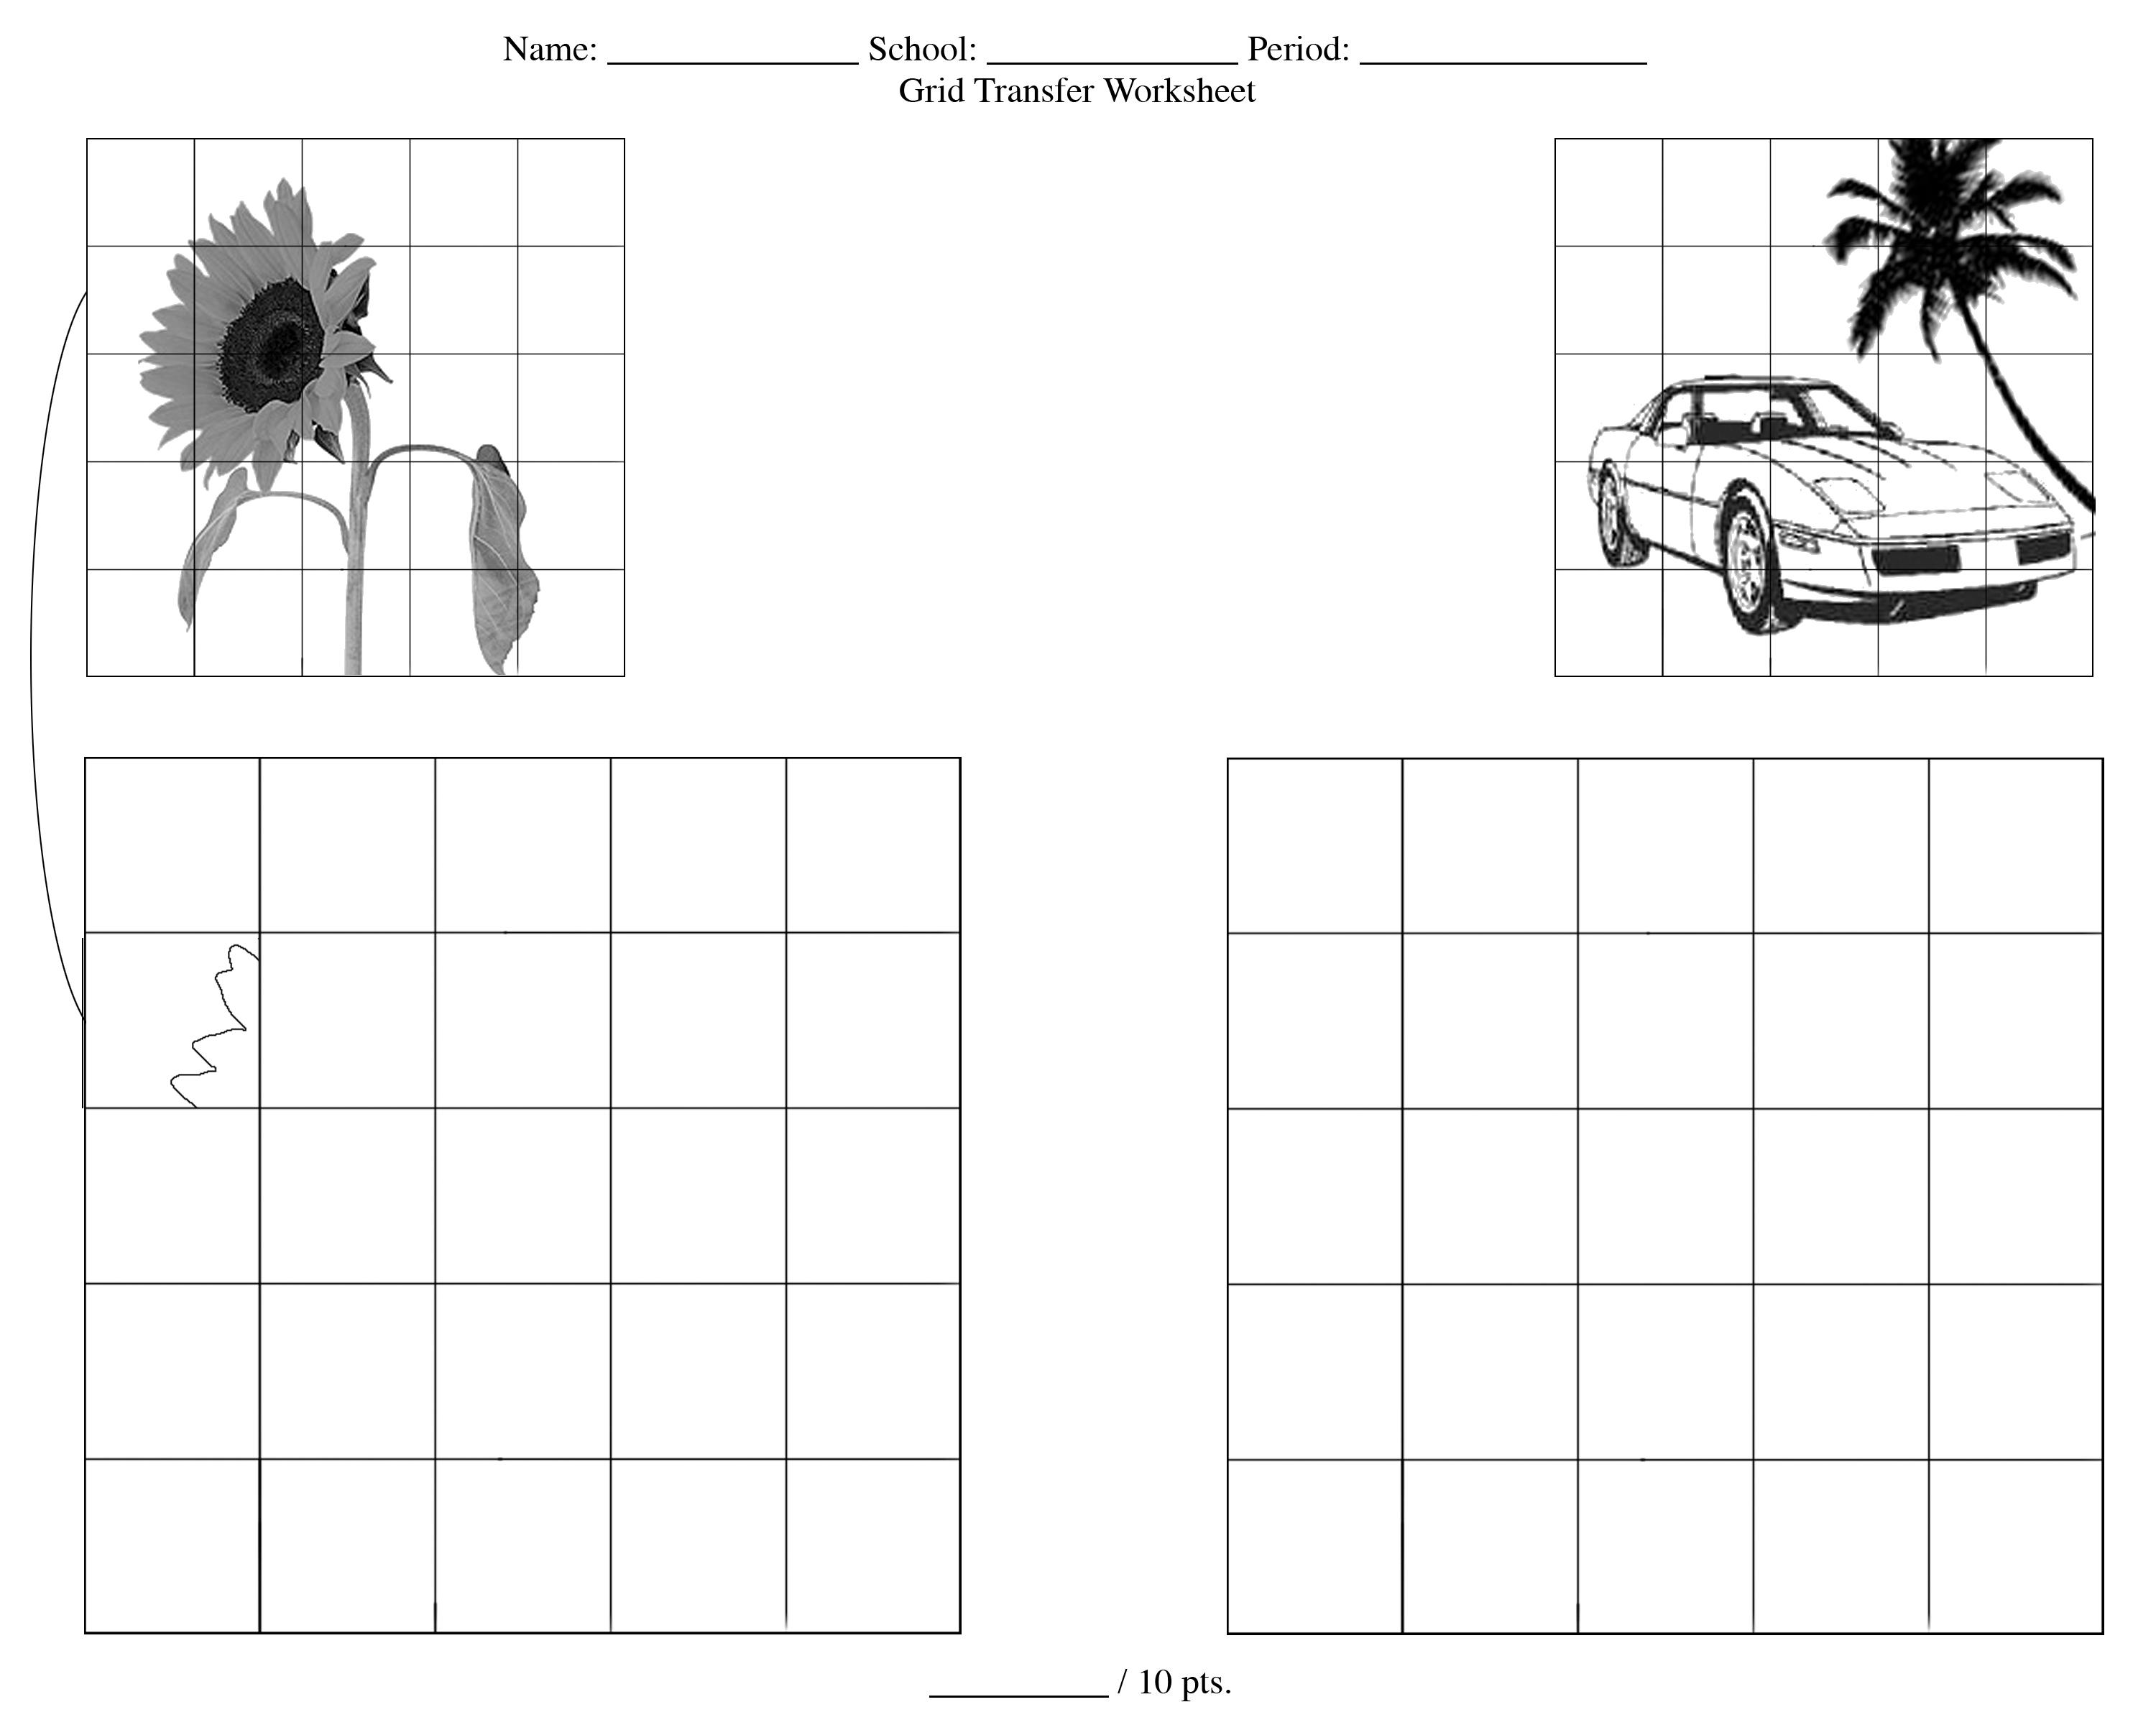 Worksheets For High School Art Free Worksheets Samples